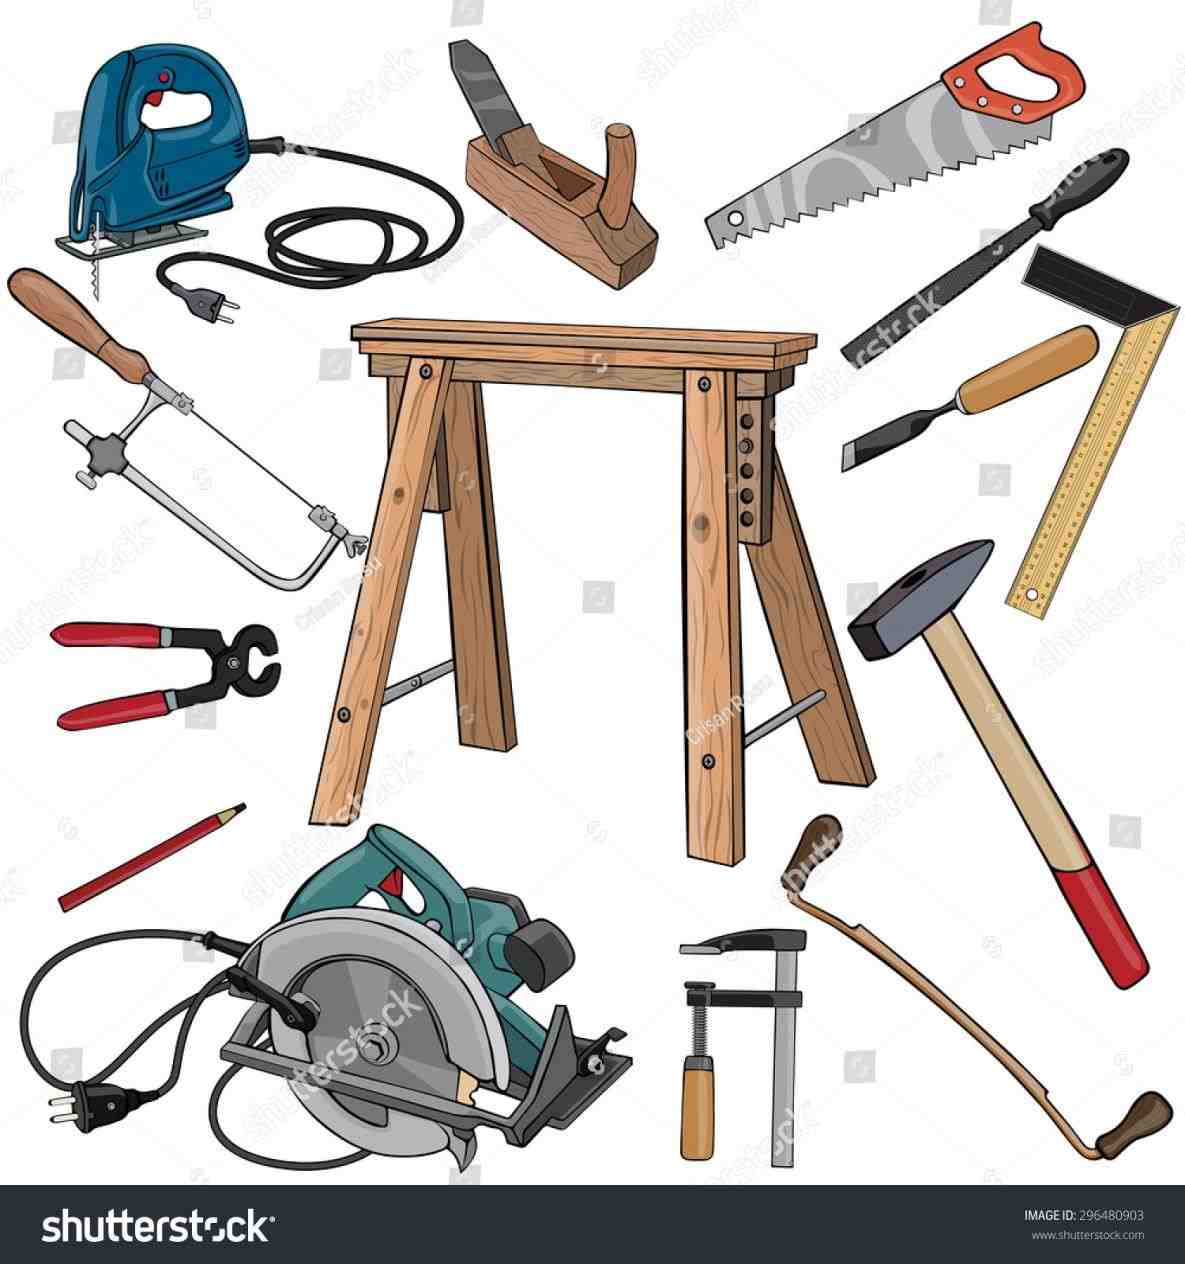 Clipart woodworking tools jpg black and white download Woodworking tools clipart 7 » Clipart Station jpg black and white download